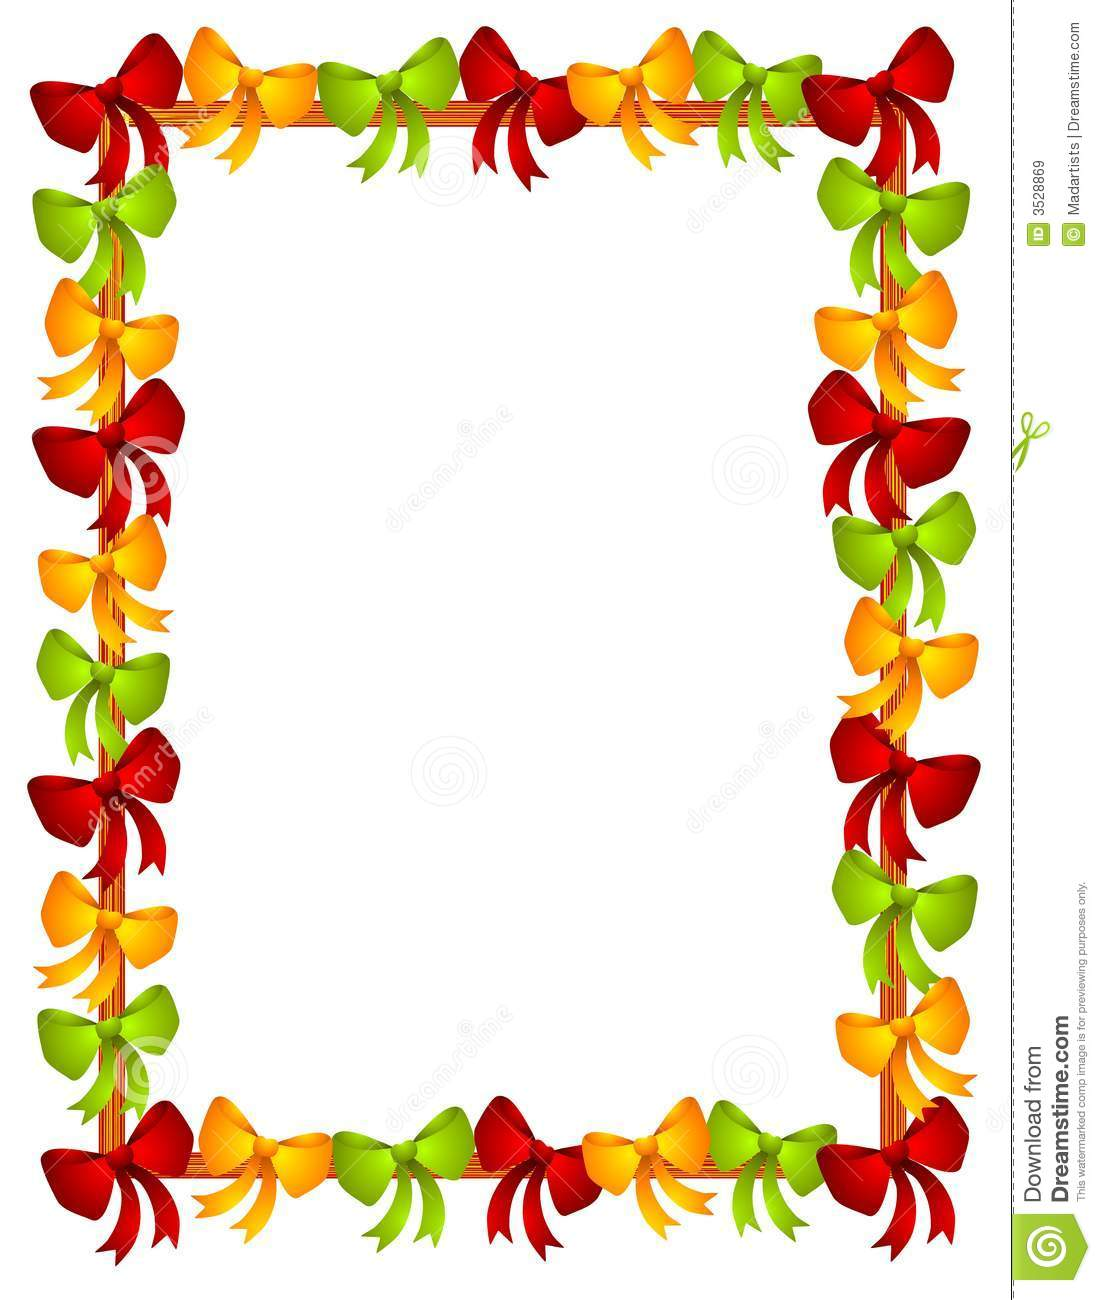 Free Christmas Clipart Frames.